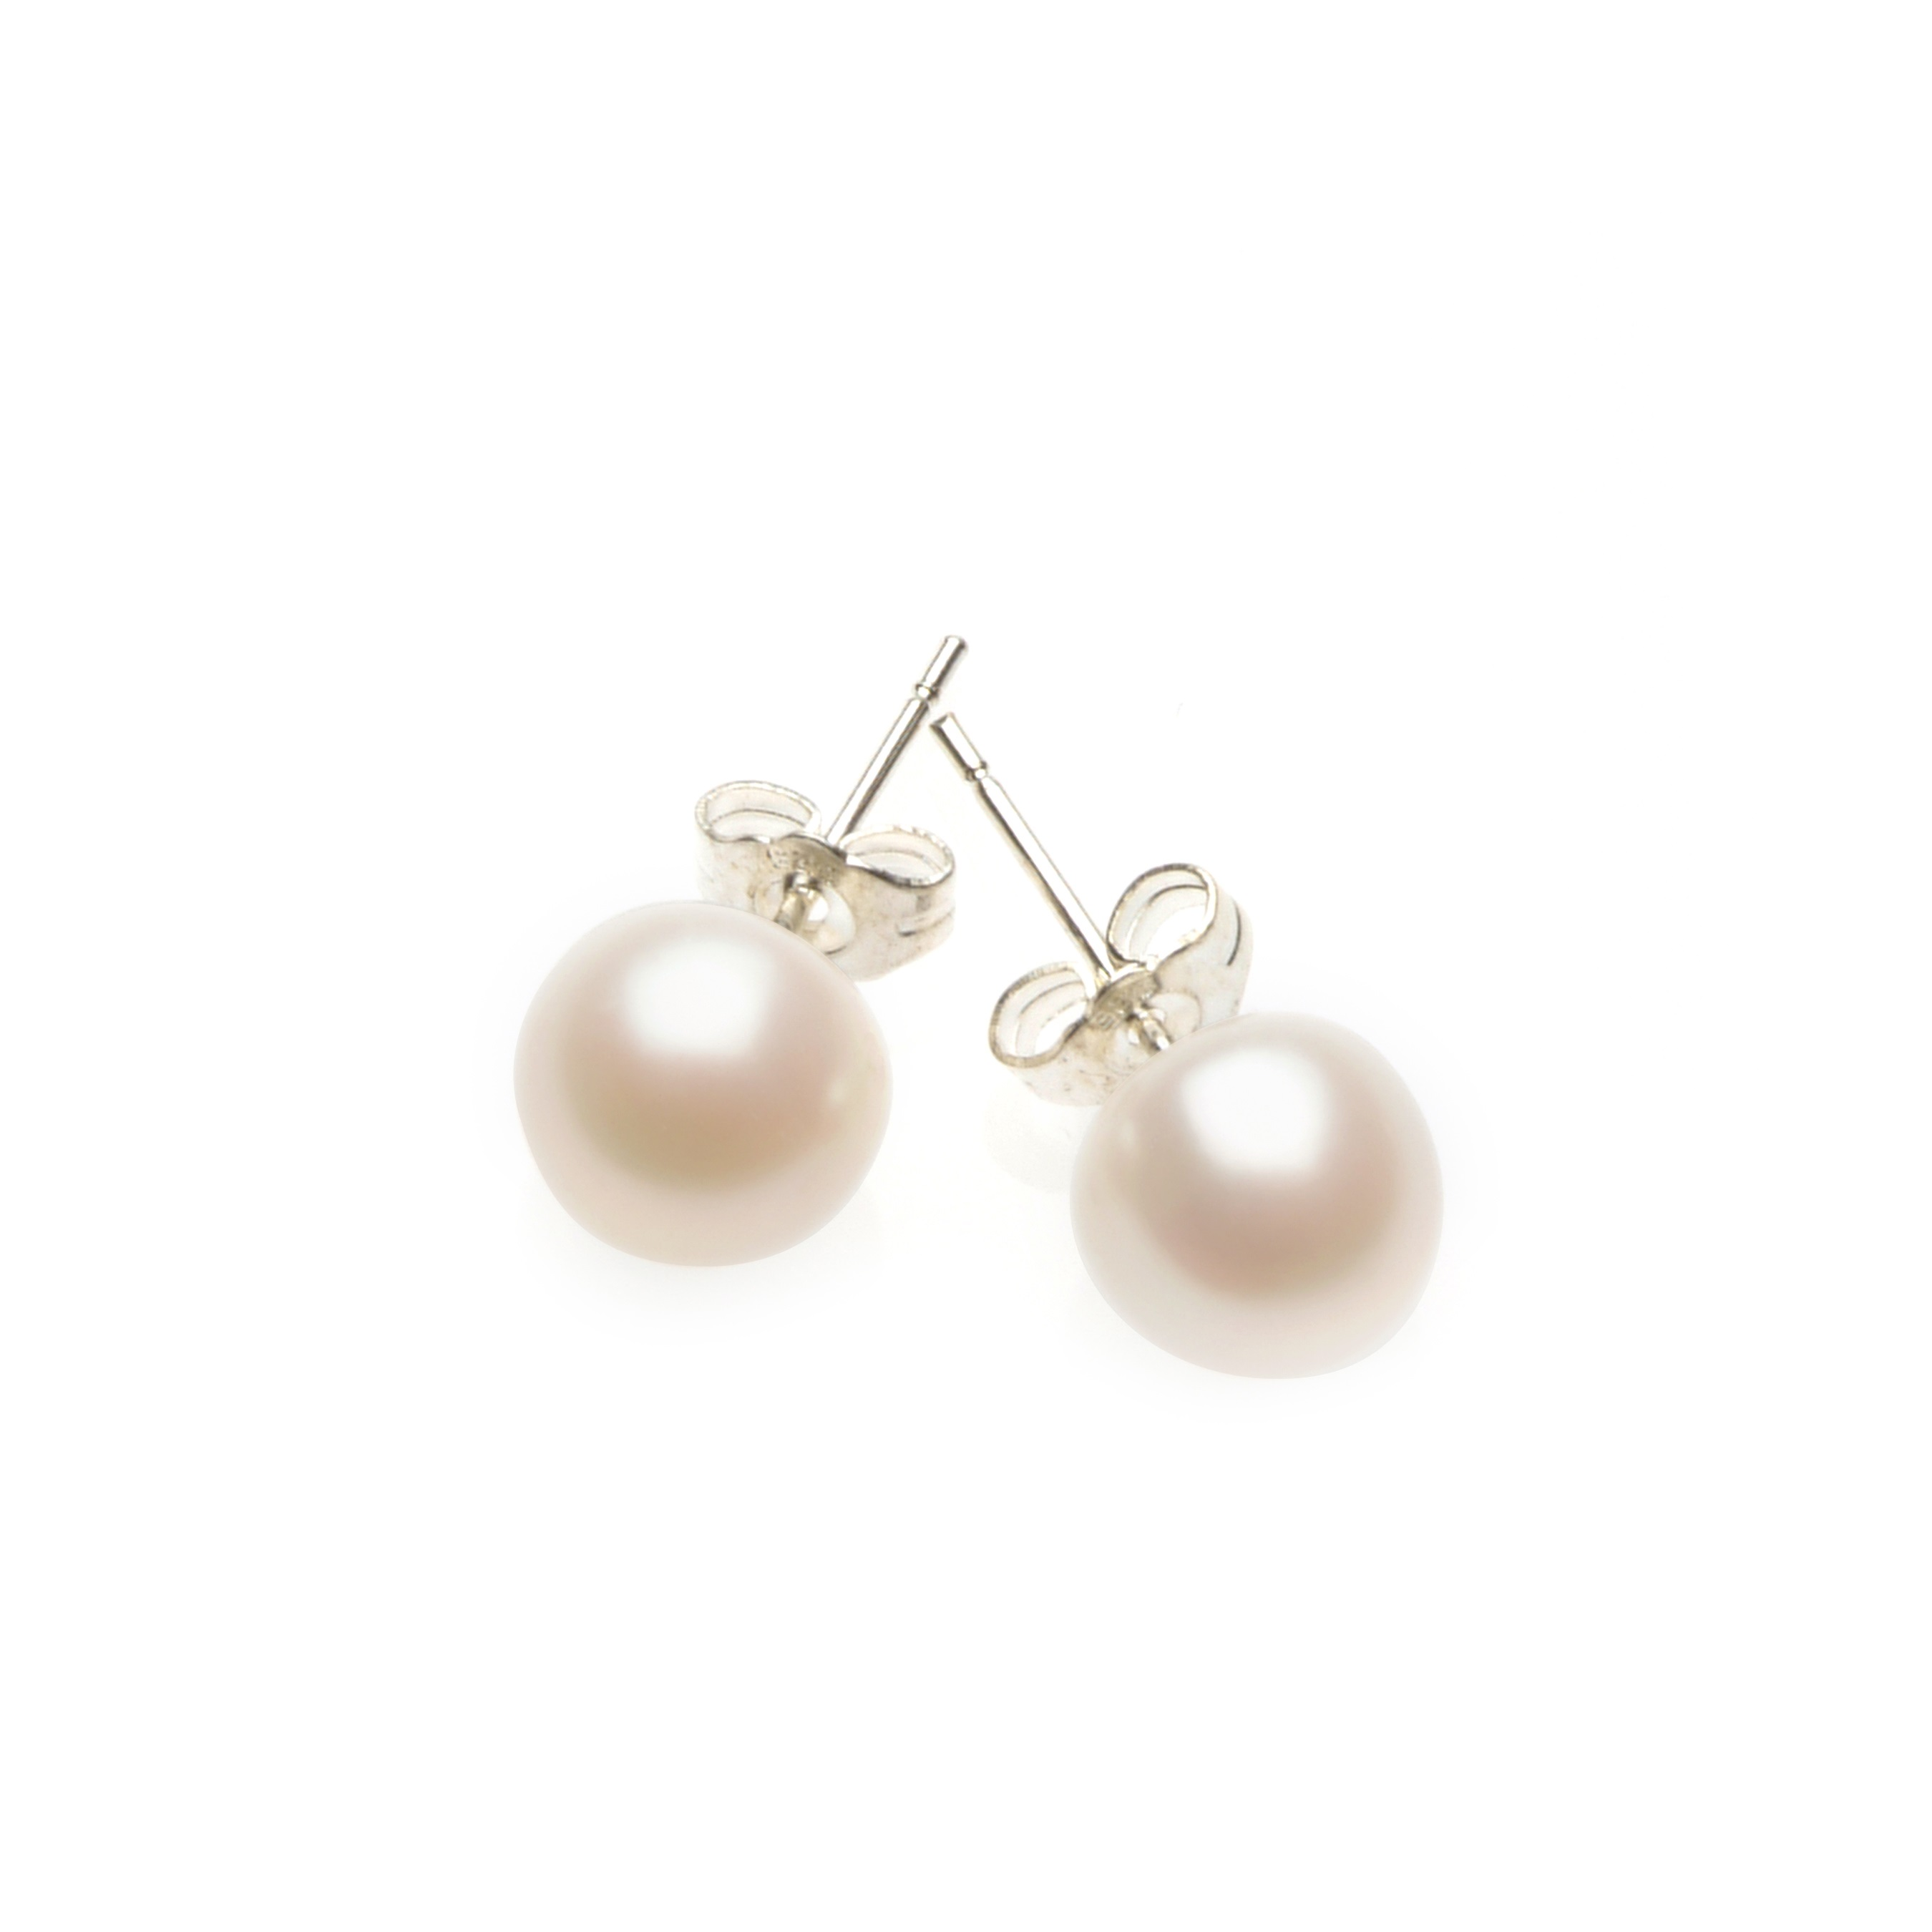 earrings pearl goldsmiths jewellery baker sina stud p ted